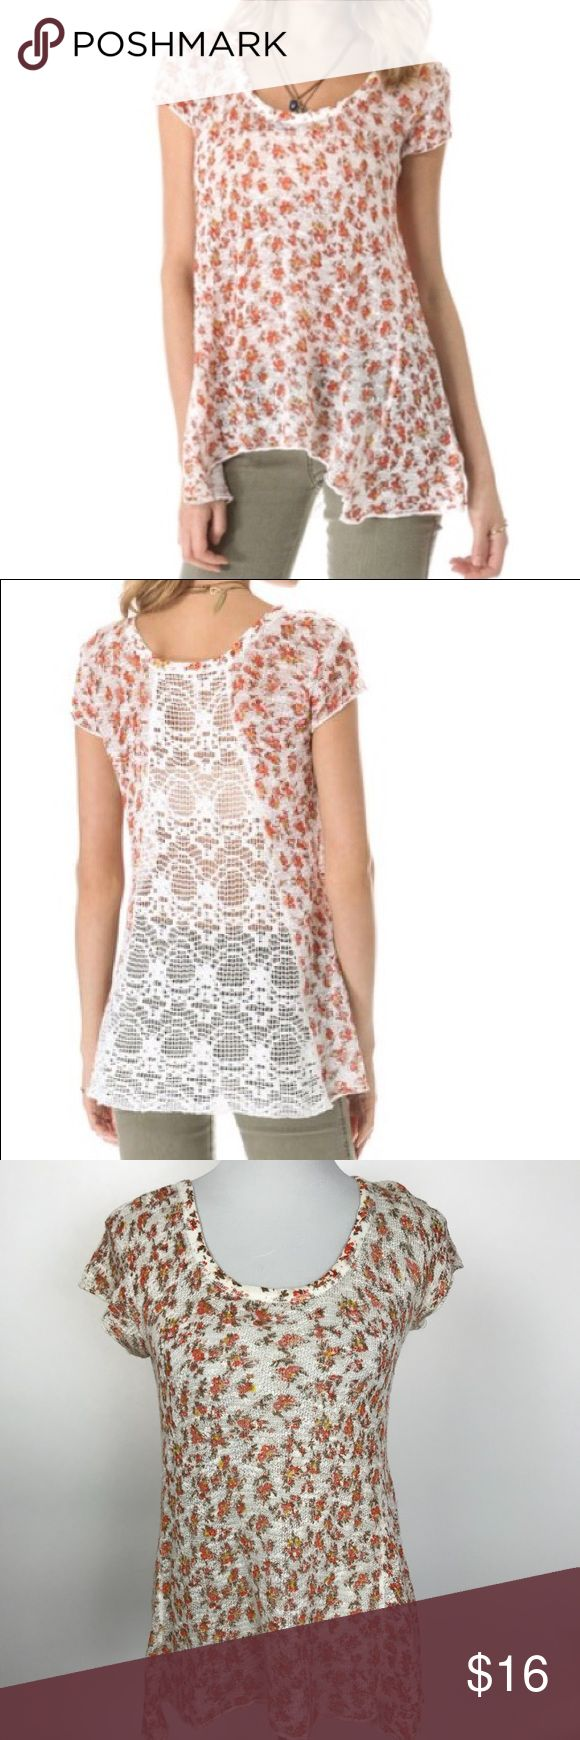 """Free People Crochet Short Sleeve Top Tunic Floral Free People Crochet Short Sleeve Top Tunic Floral Small   Approximate measurements, laying flat:  Pit to pit: 16"""" Length: 26.5"""" Free People Tops Tunics"""